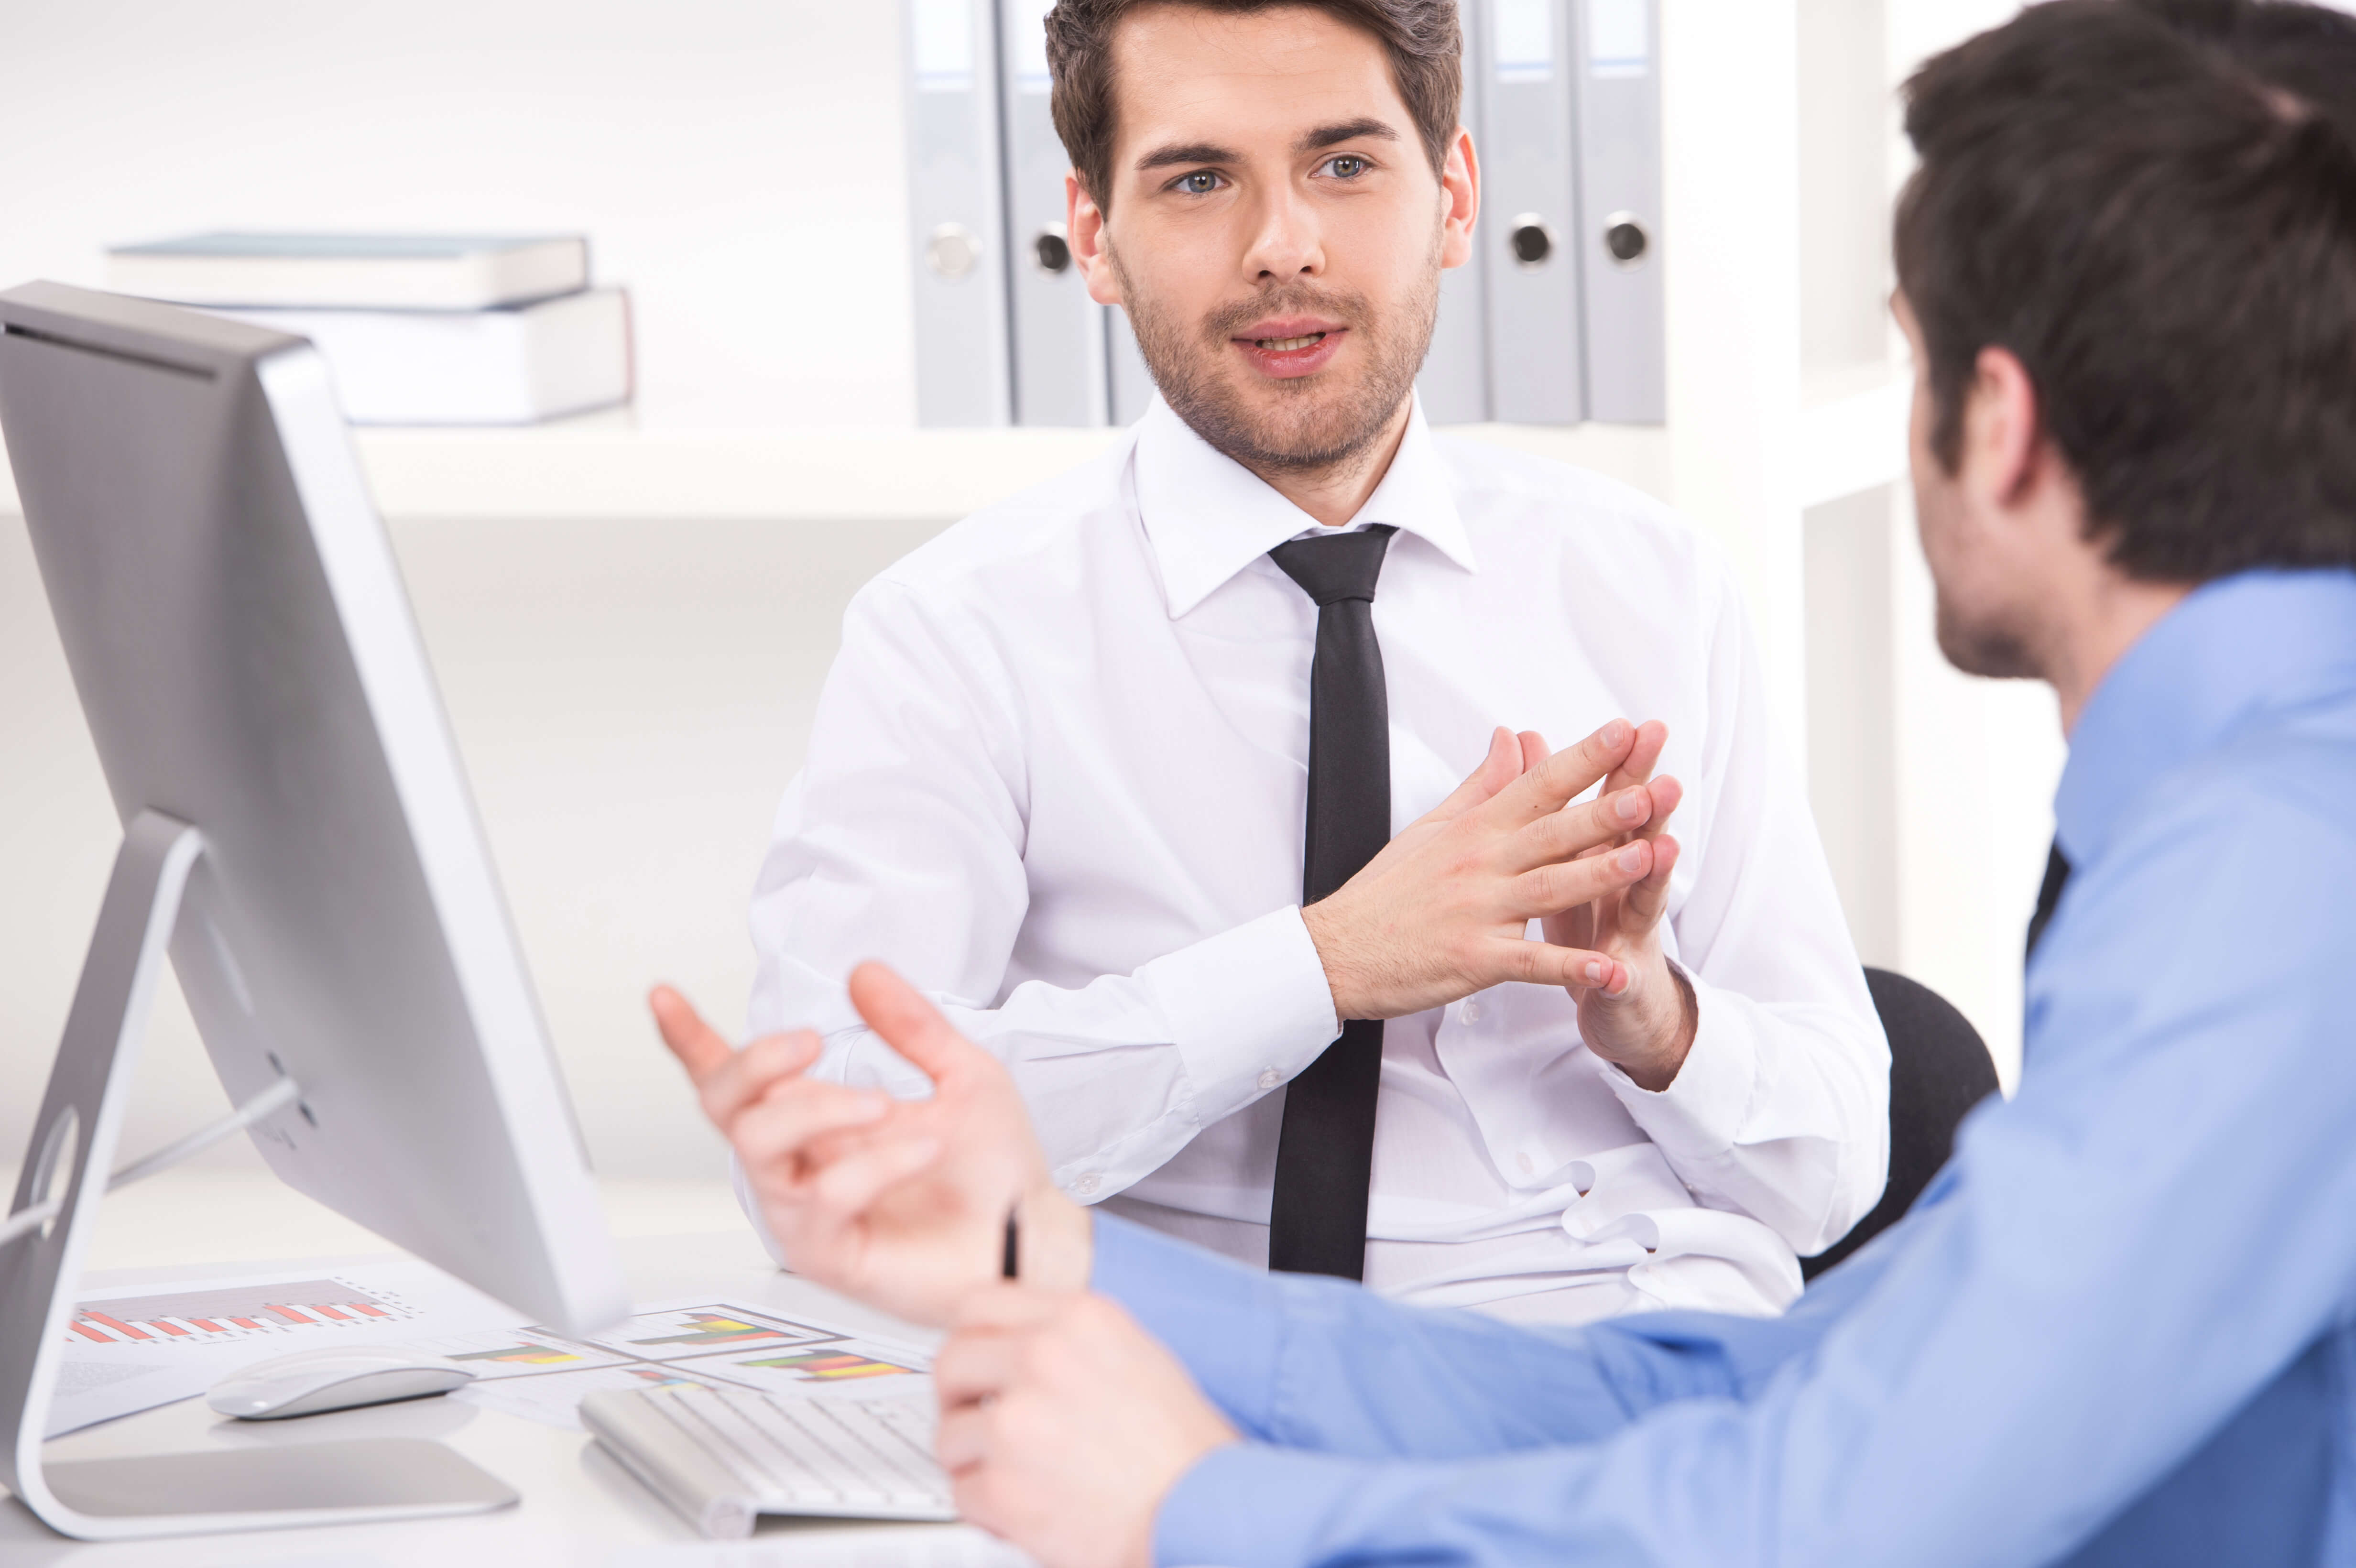 7 steps for dealing a bad boss amy castro performance confront your boss when he s not doing what a boss should do whether it s a boss who doesn t take actions on complaints one who screams and yells